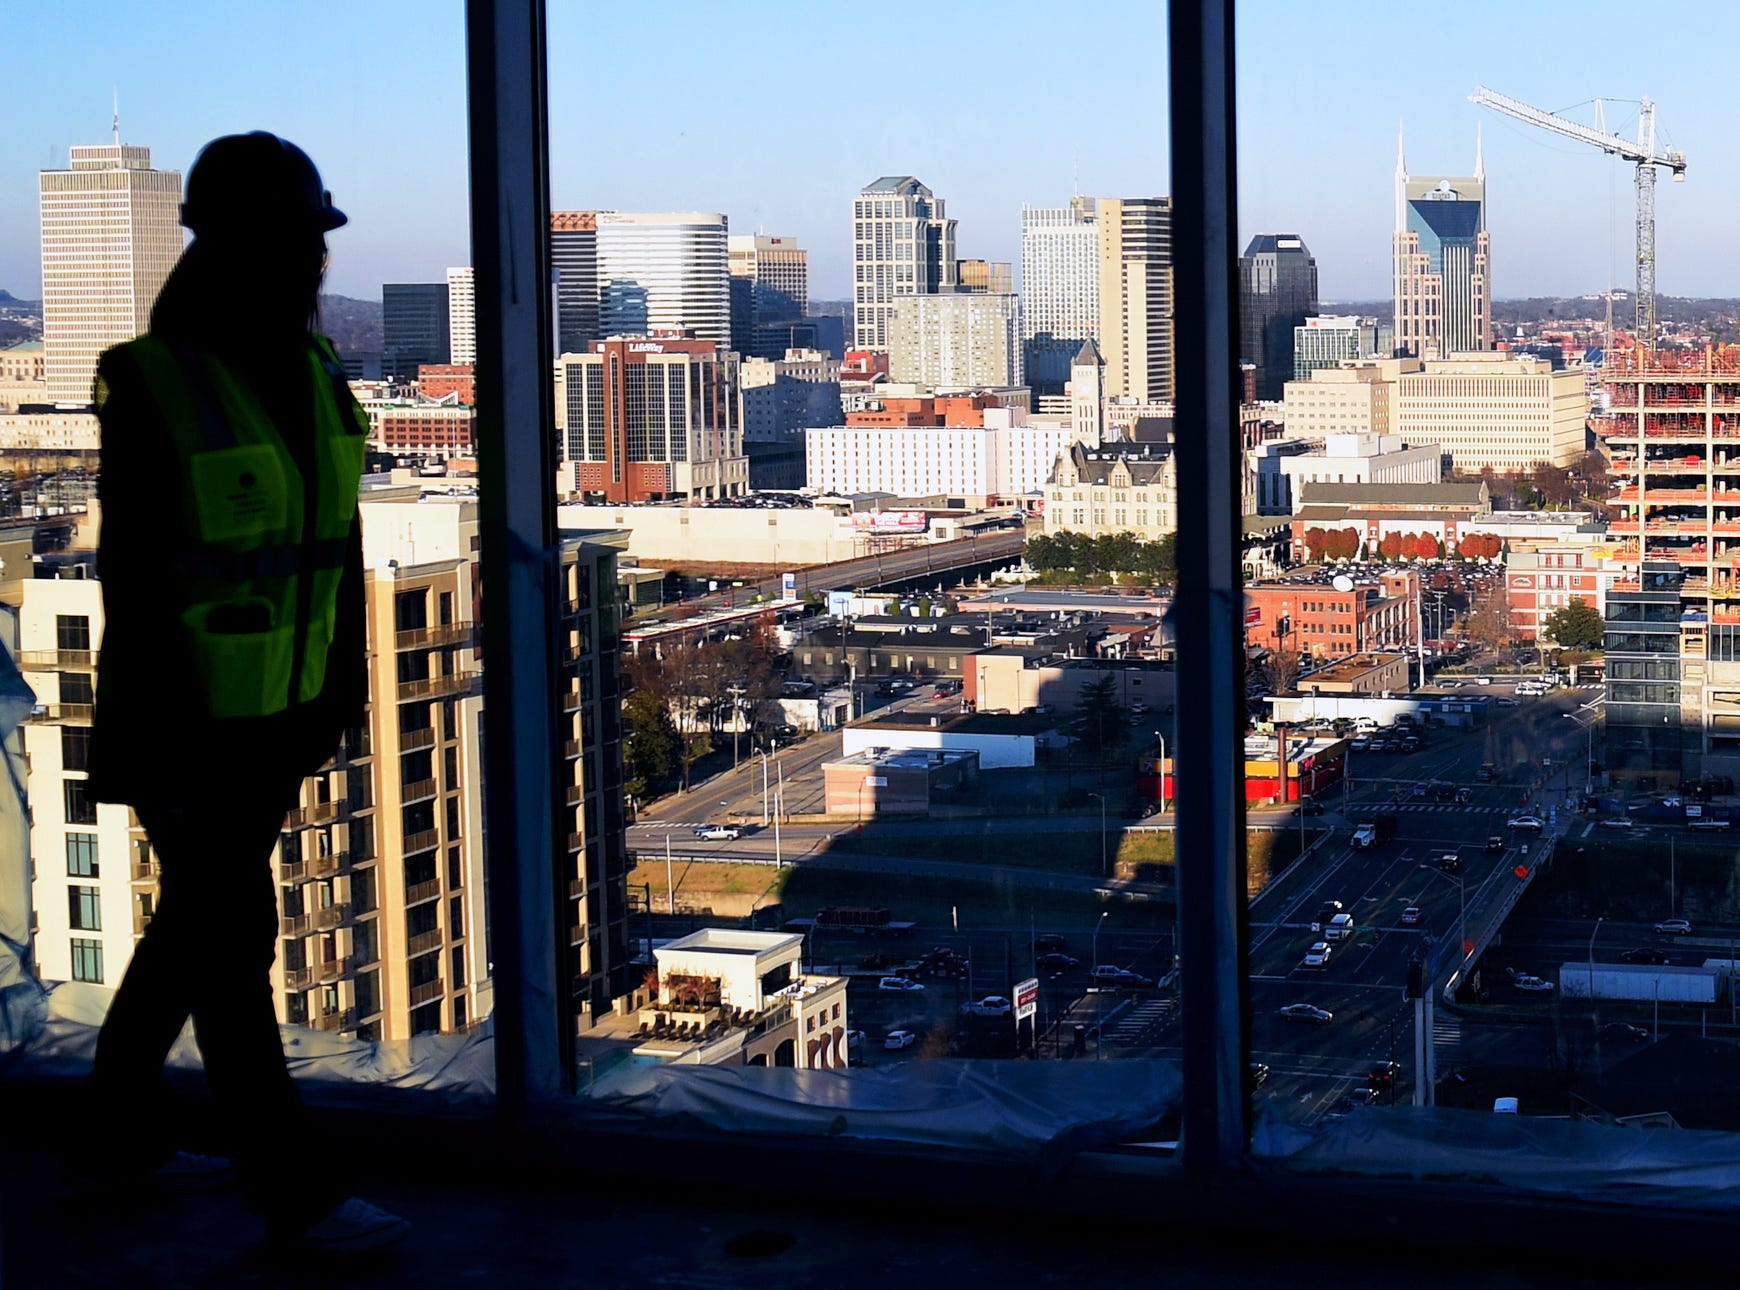 Chloe Evans gives a tour of an penthouse under construction at Element Music Row high rise apartment building with views of downtown Nashville skyline on Dec. 20, 2015. Element Music Row, located on Demonbreun Street, will be completed in April 2016.